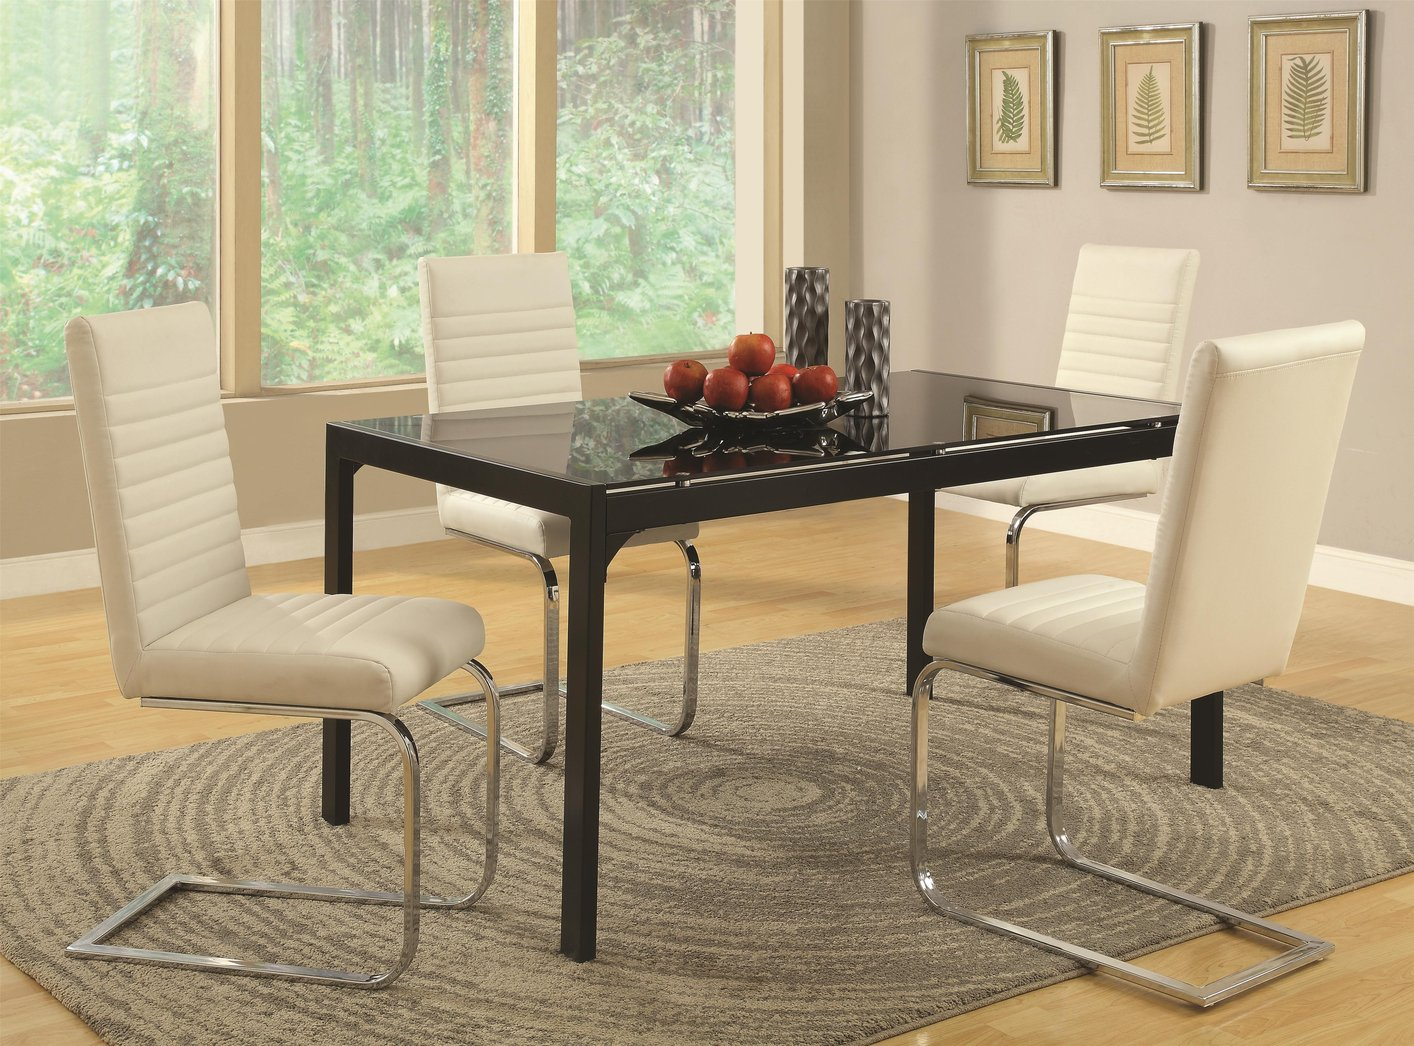 Coaster 104311 Black Glass Dining Table Steal A Sofa